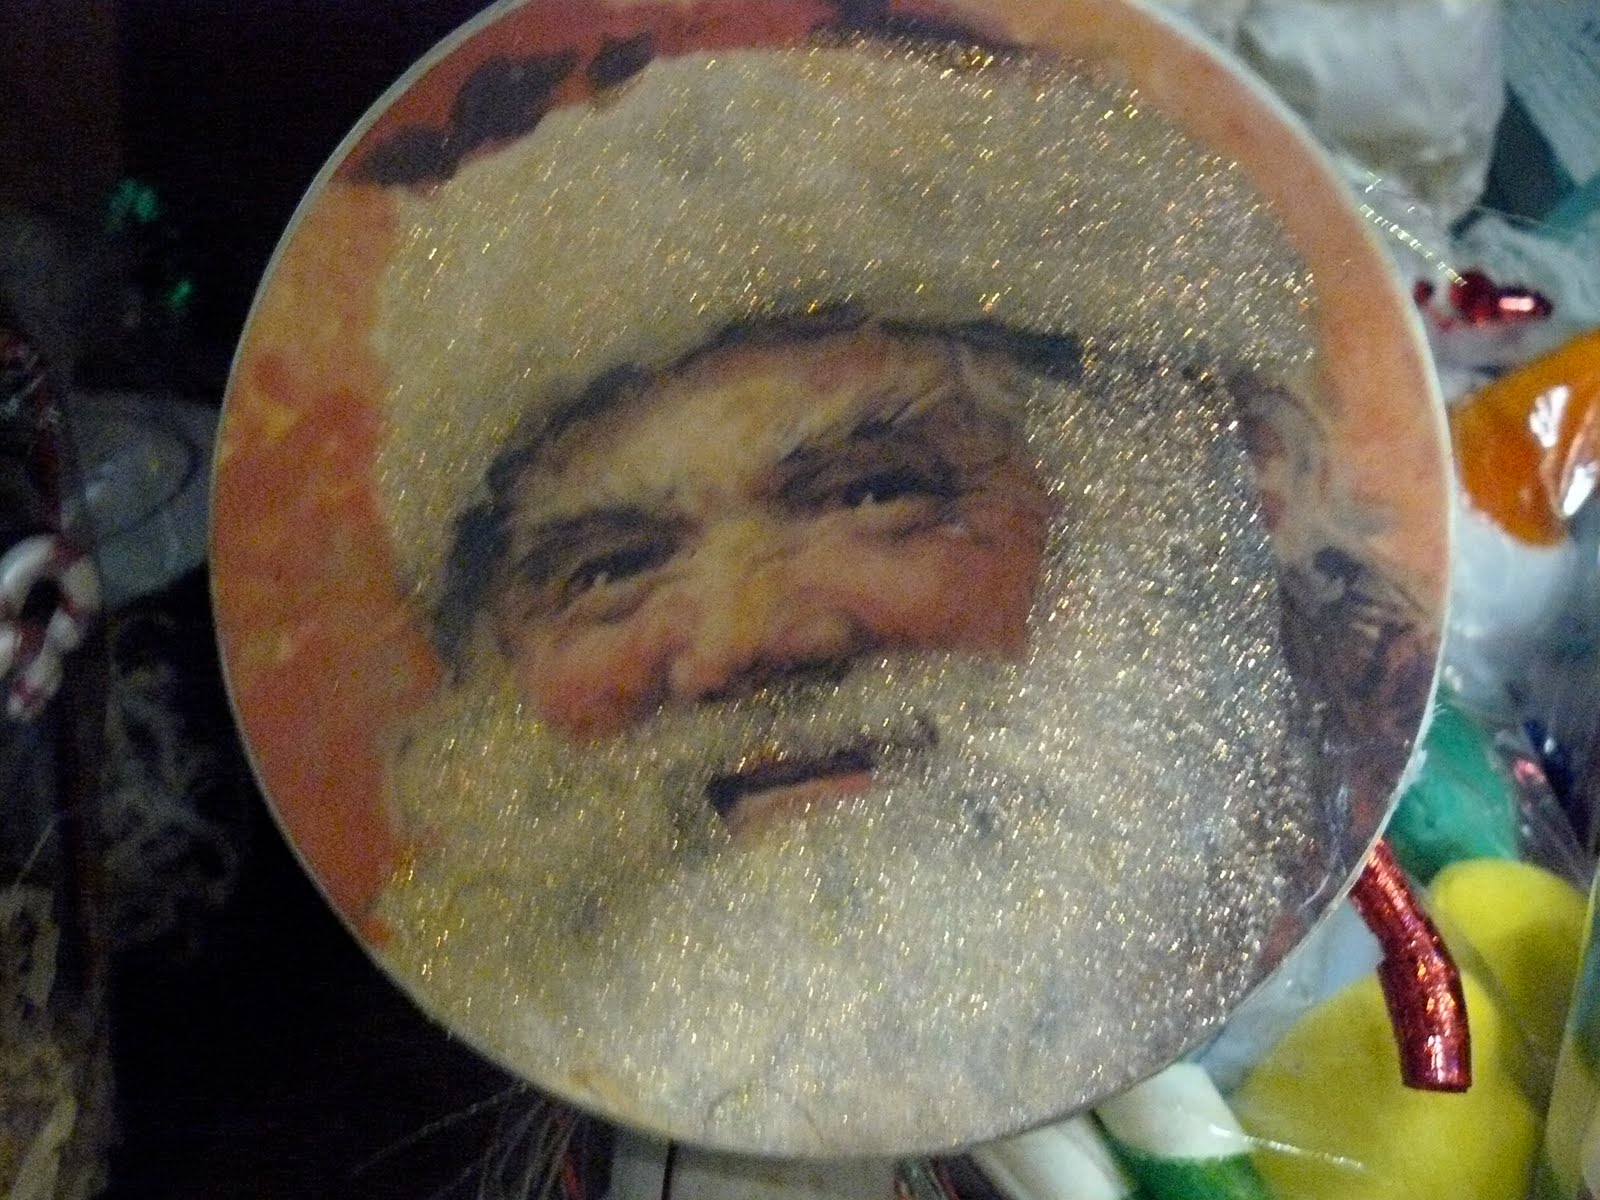 It's beginning to look a lot like Christmas - Scranberry Coop - Vintage Store - Antiques, Collectibles, & More